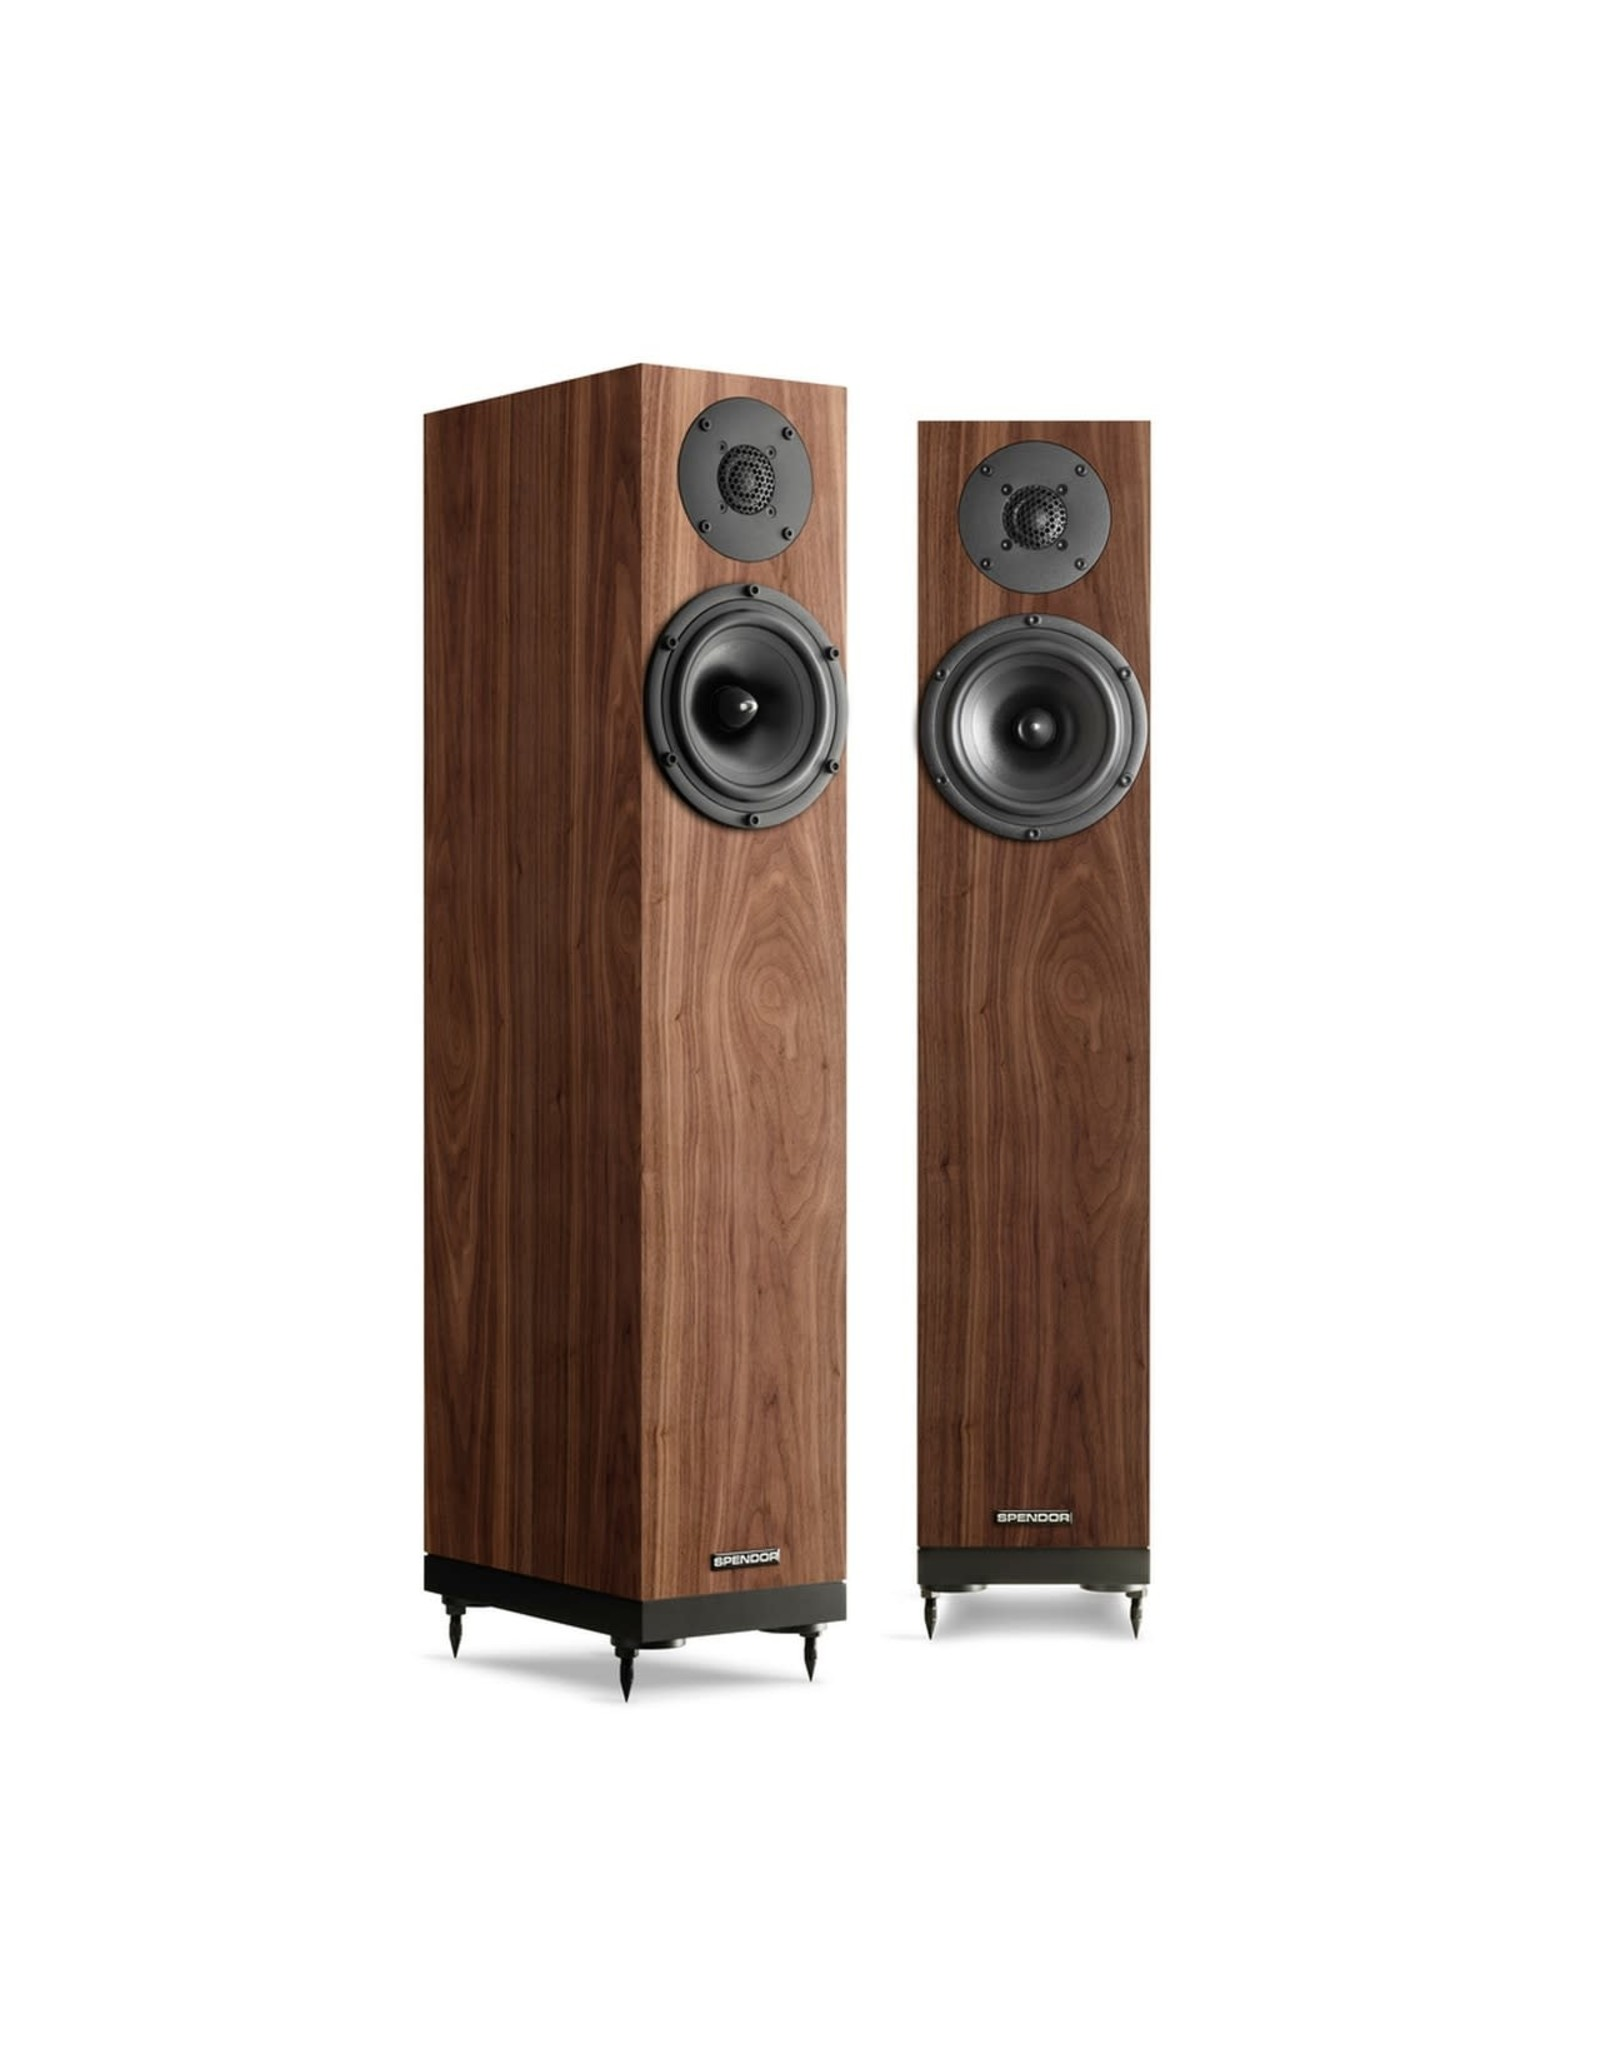 Spendor Spendor A2 Floorstanding Speakers